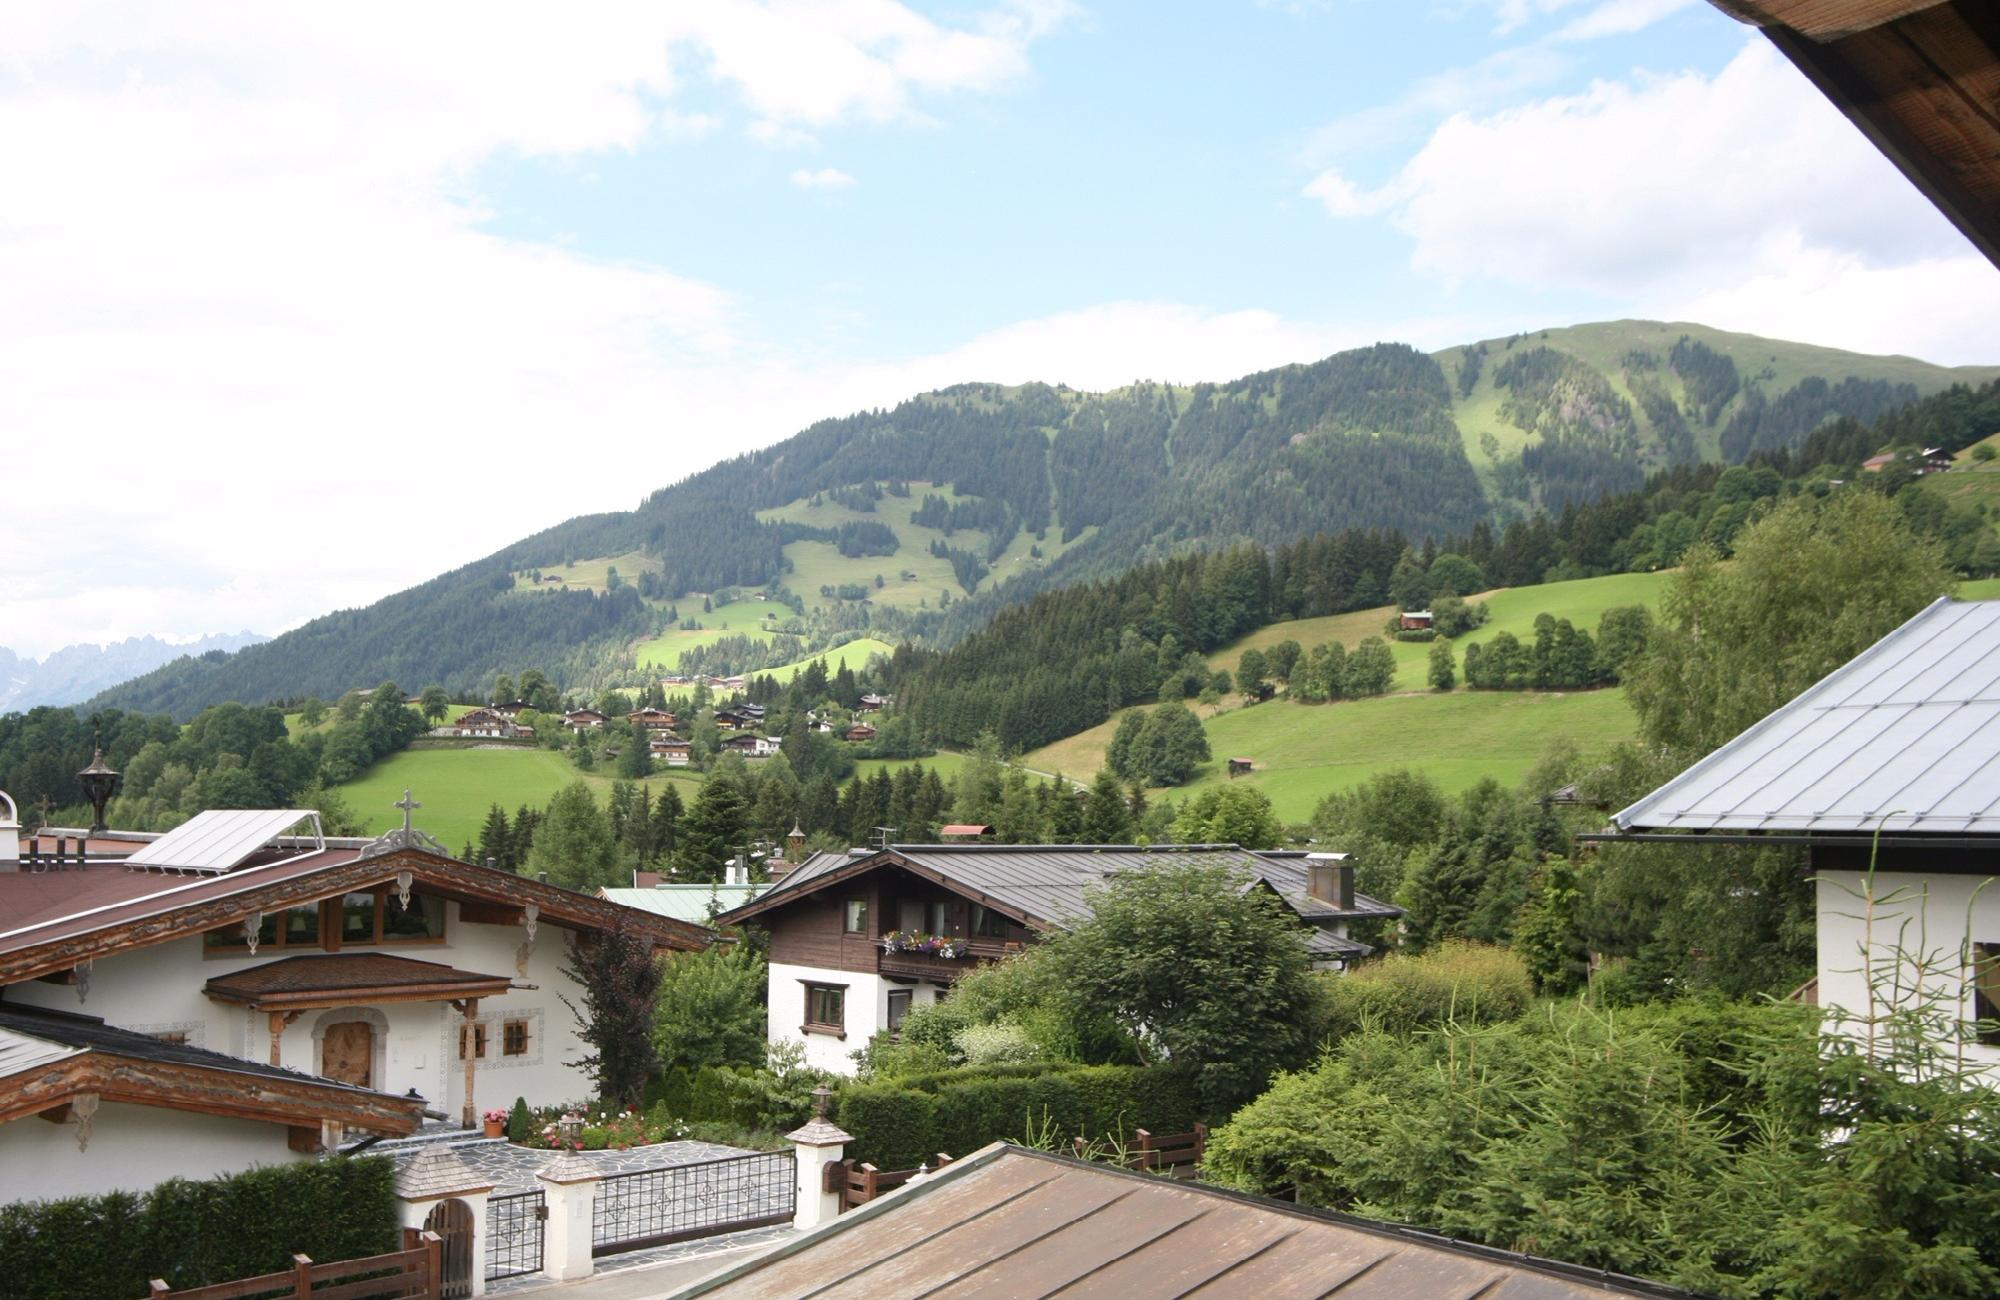 Fantastic plot in an exclusive location in Kitzbuhel 1 - Tirol - Austria